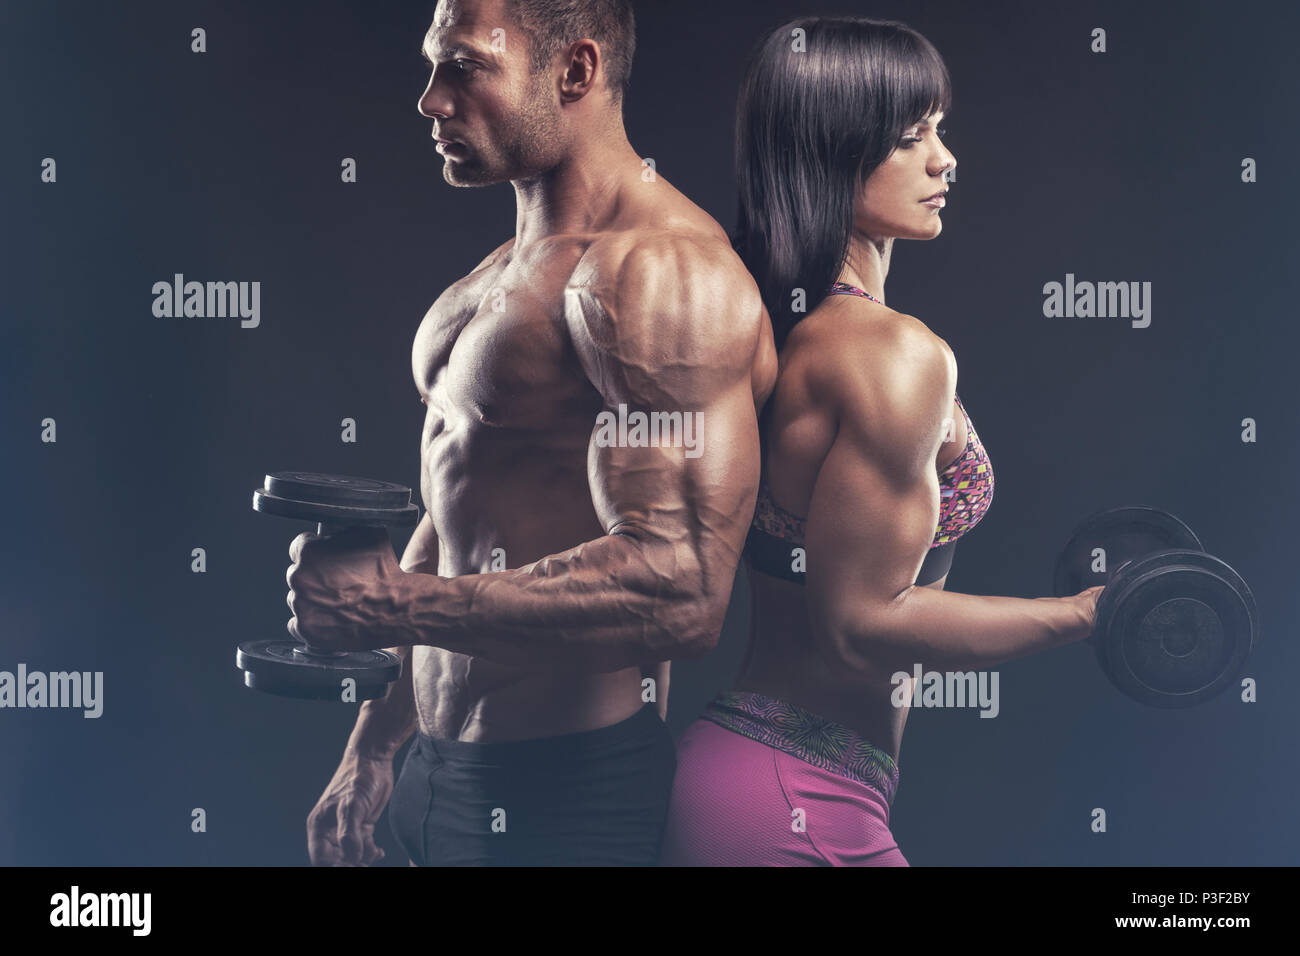 Bodybuilding Couple High Resolution Stock Photography And Images Alamy